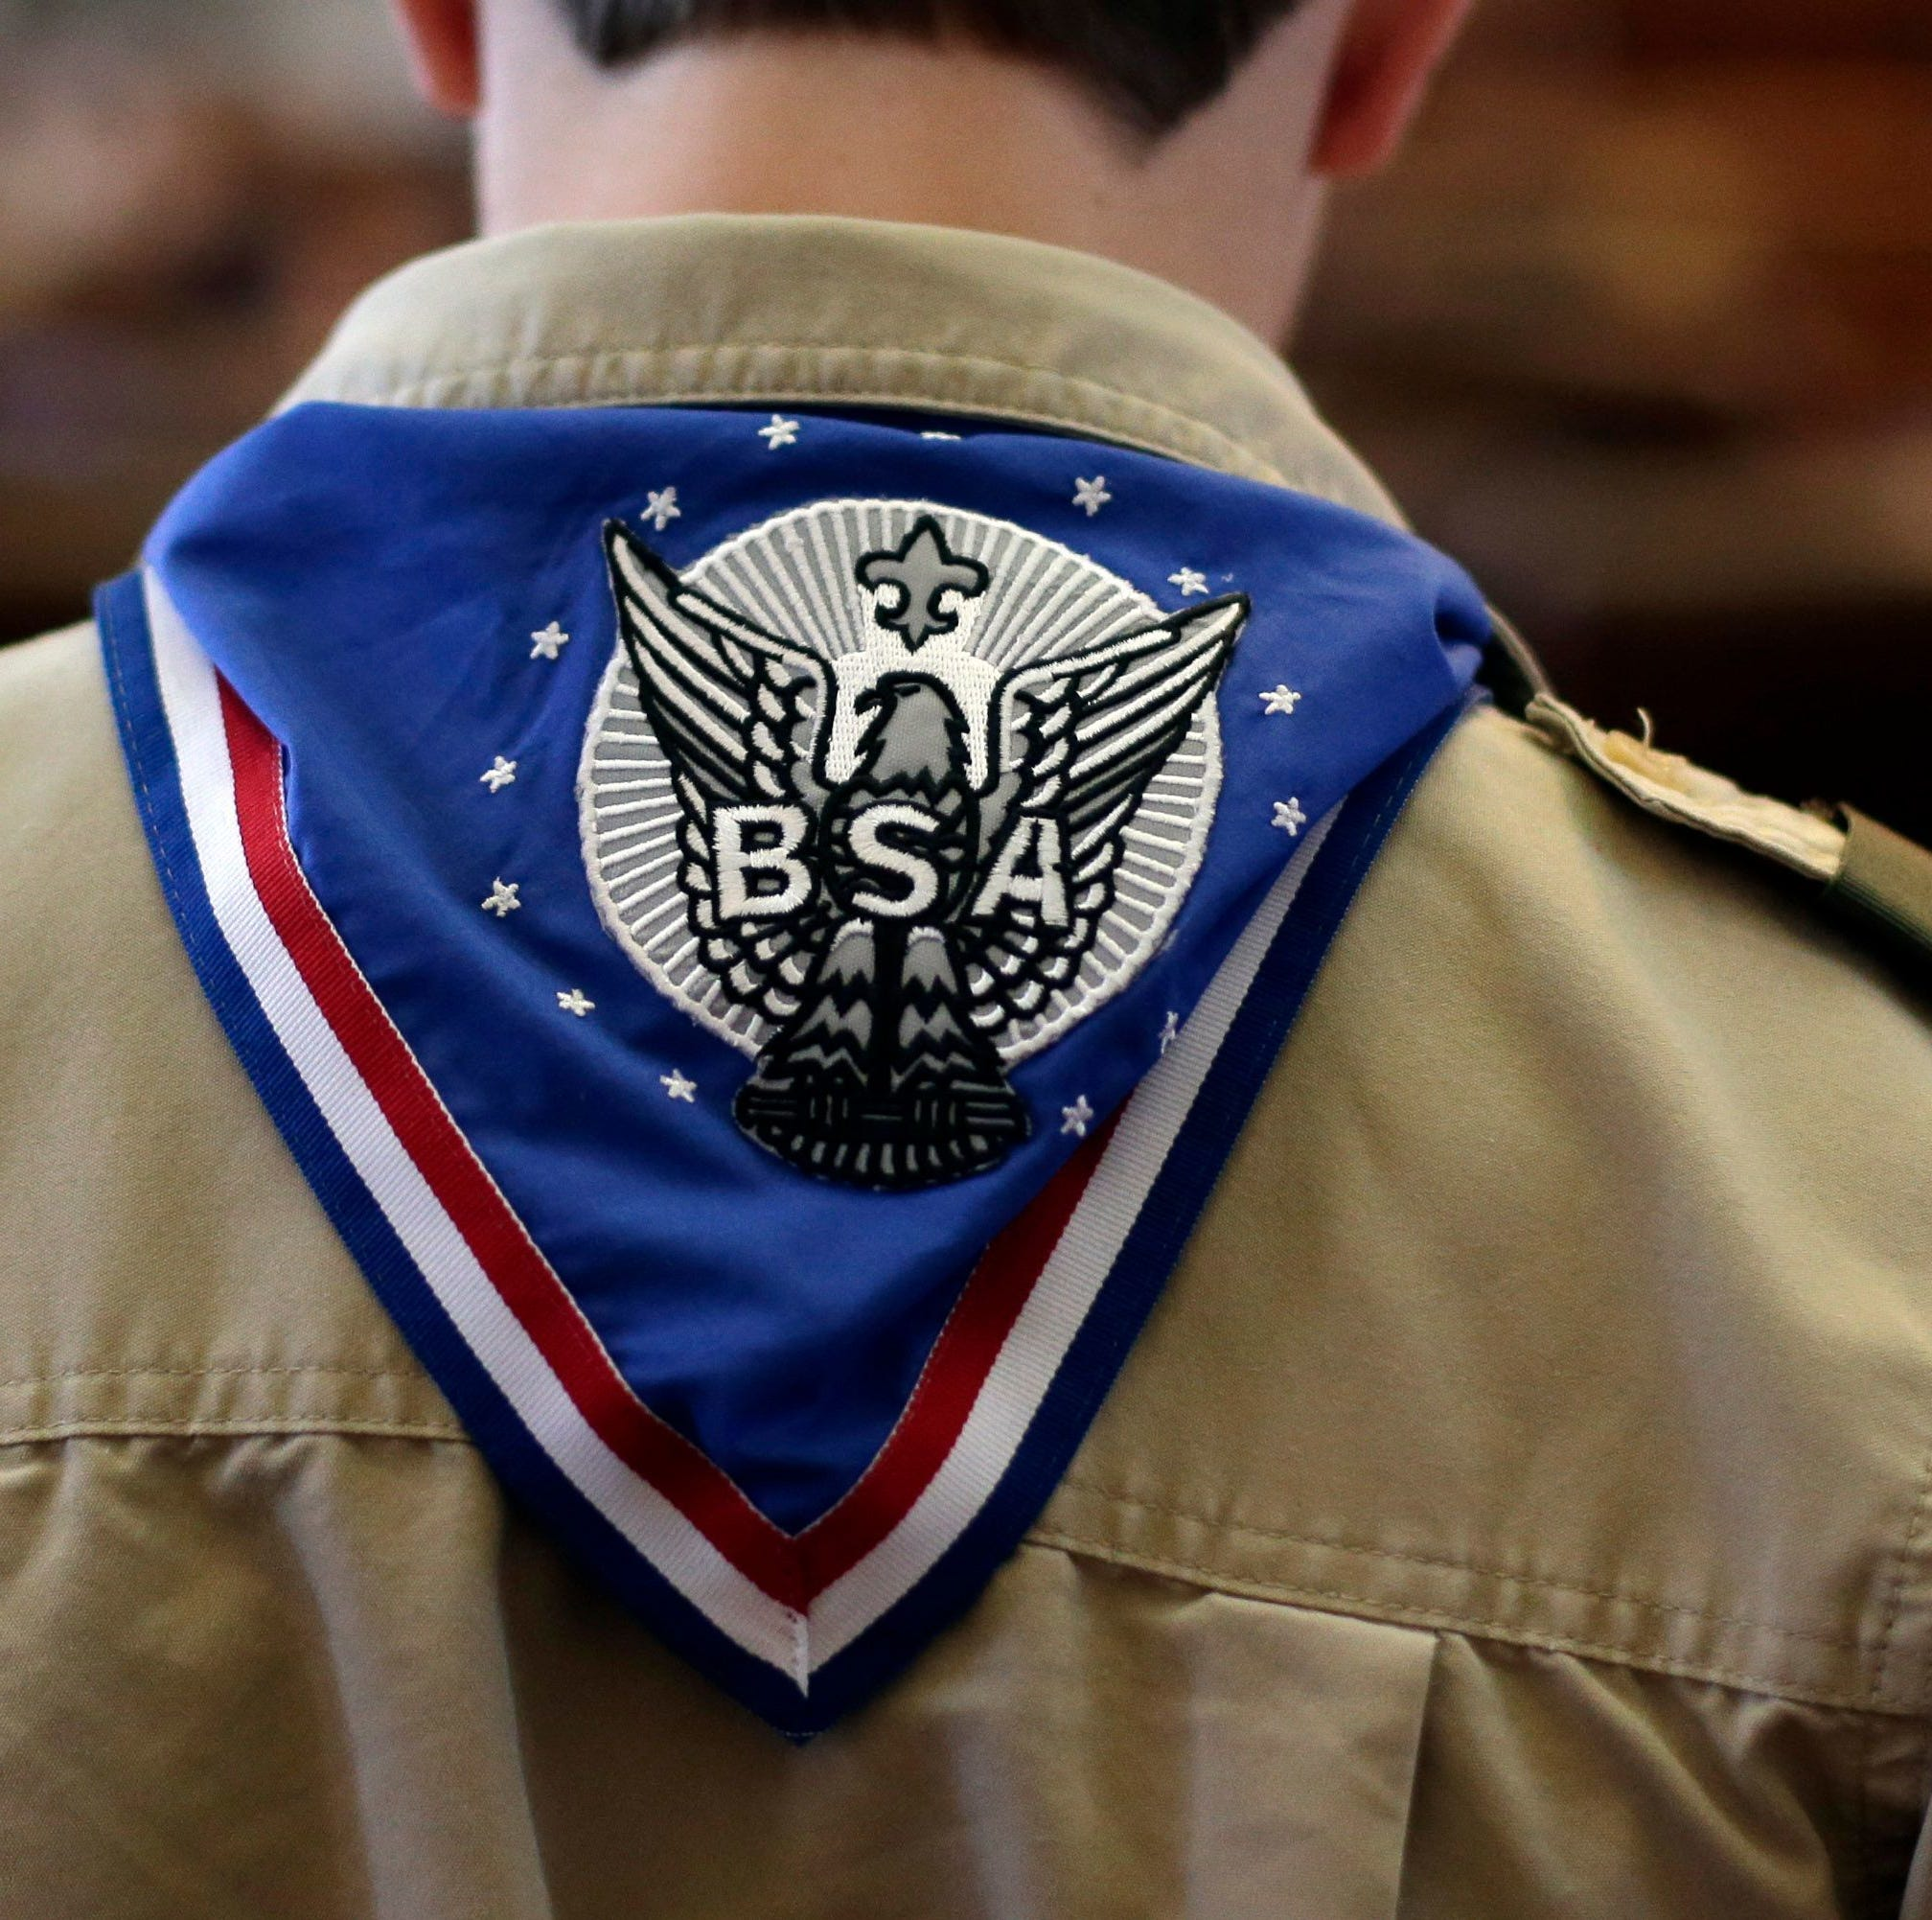 Memphis Boy Scout treasurer took nearly $10,000 from troop, police said